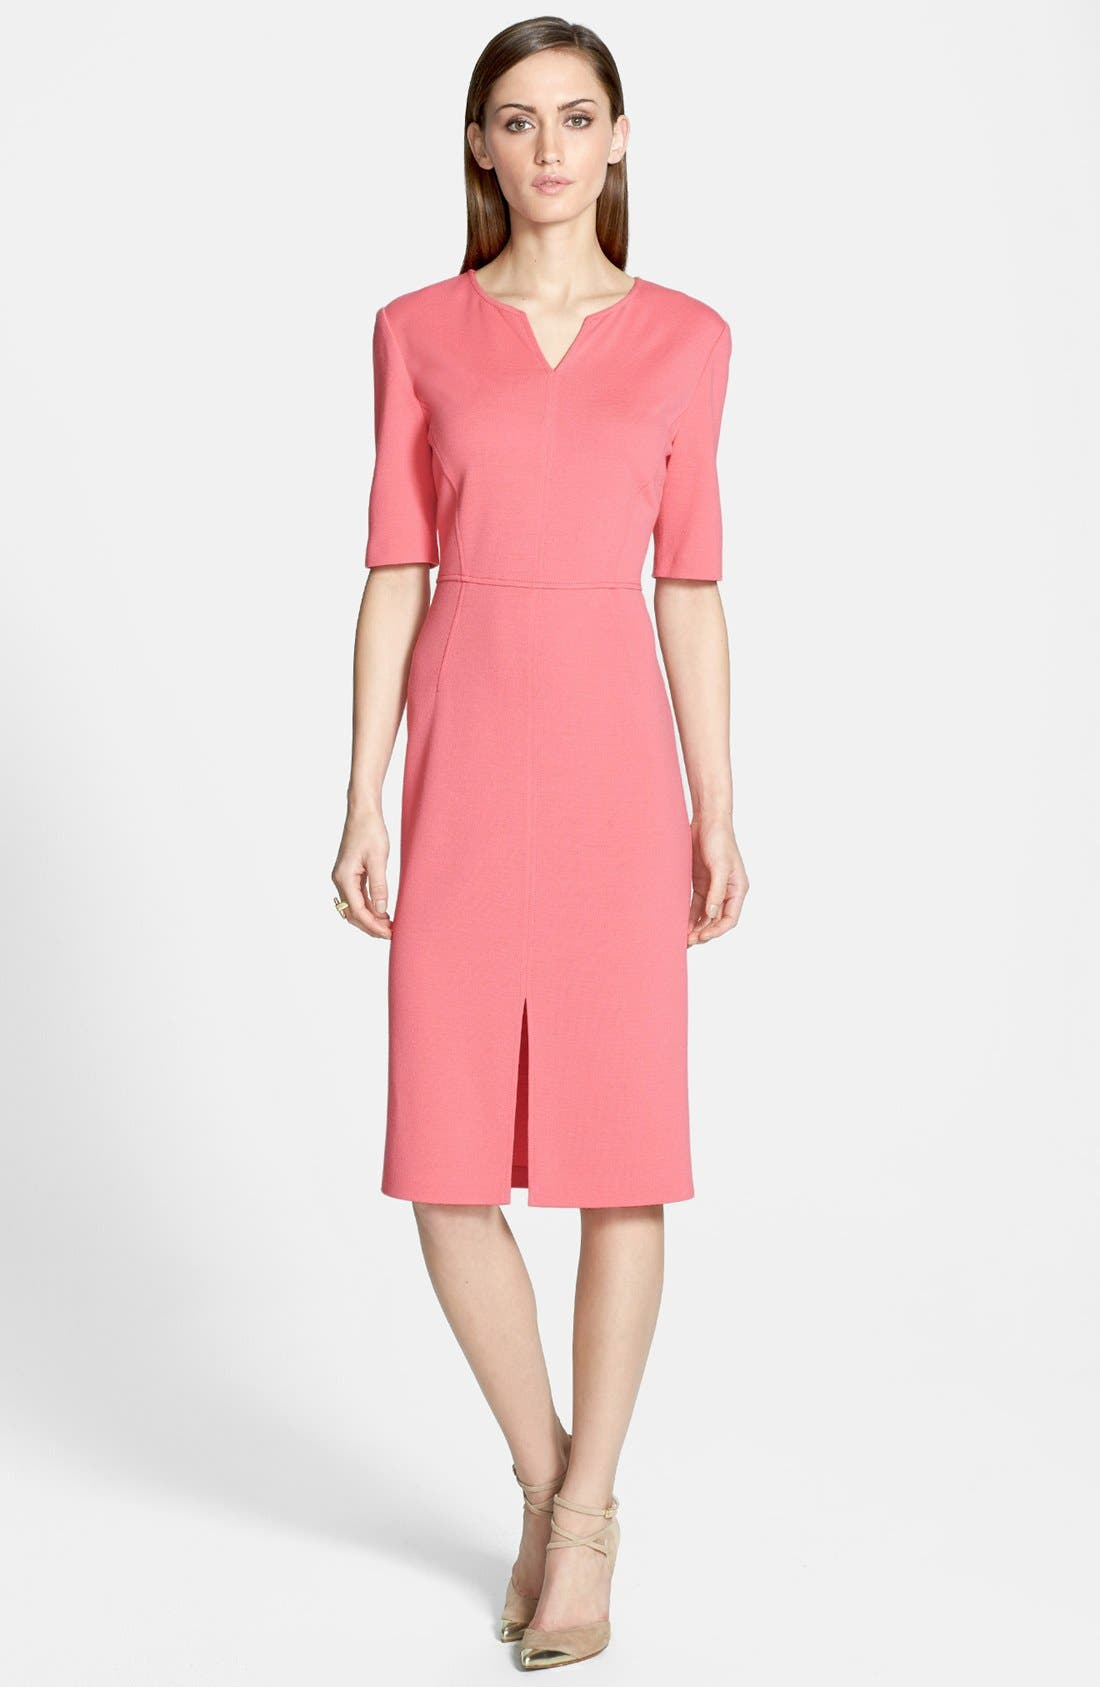 Main Image - St. John Collection Elbow Sleeve Milano Knit Fitted Dress